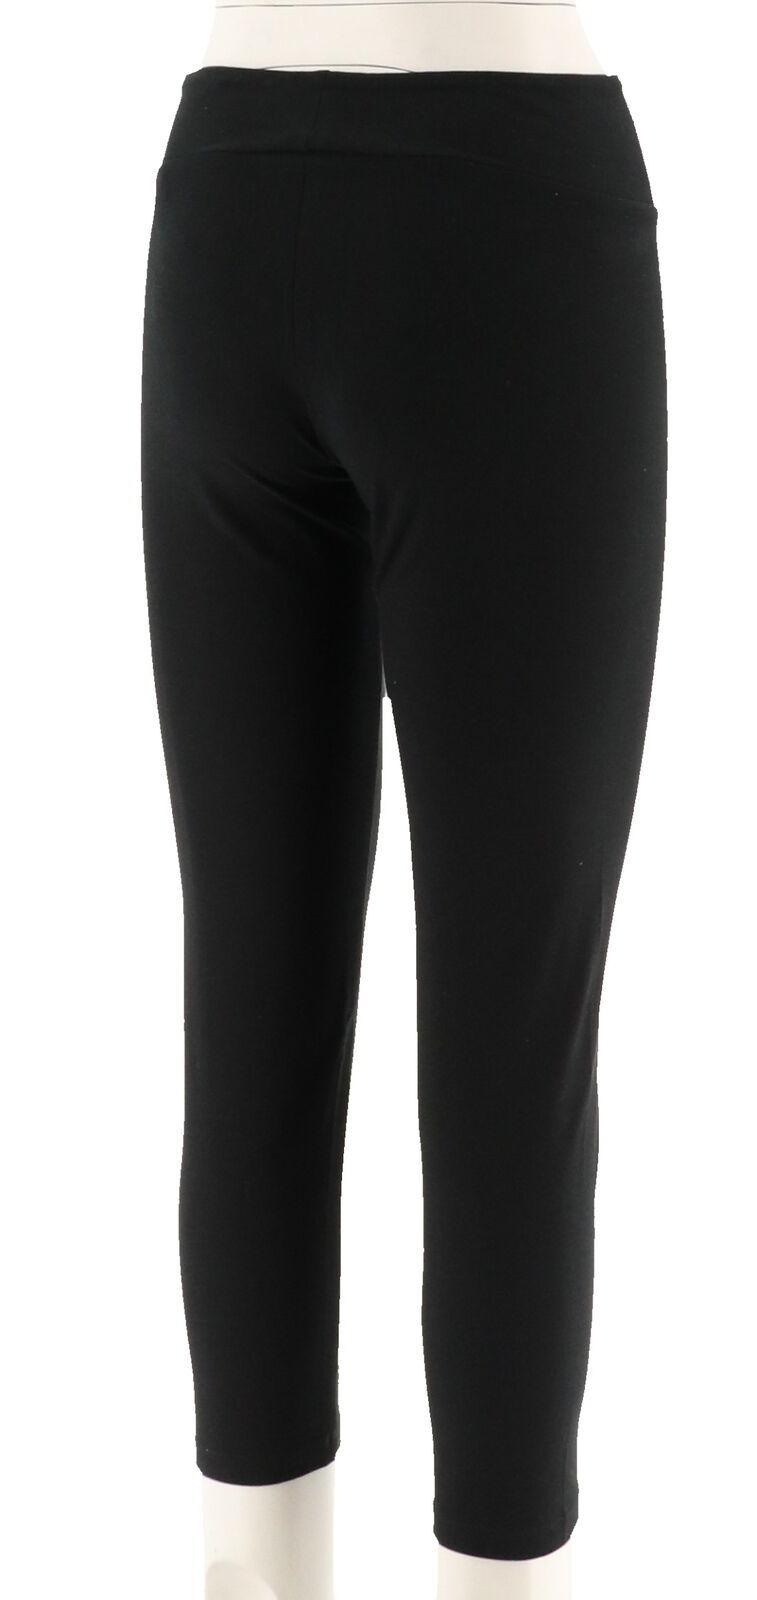 Women with Control Petite Tummy Control Ankle Pants Black PXS NEW A286521